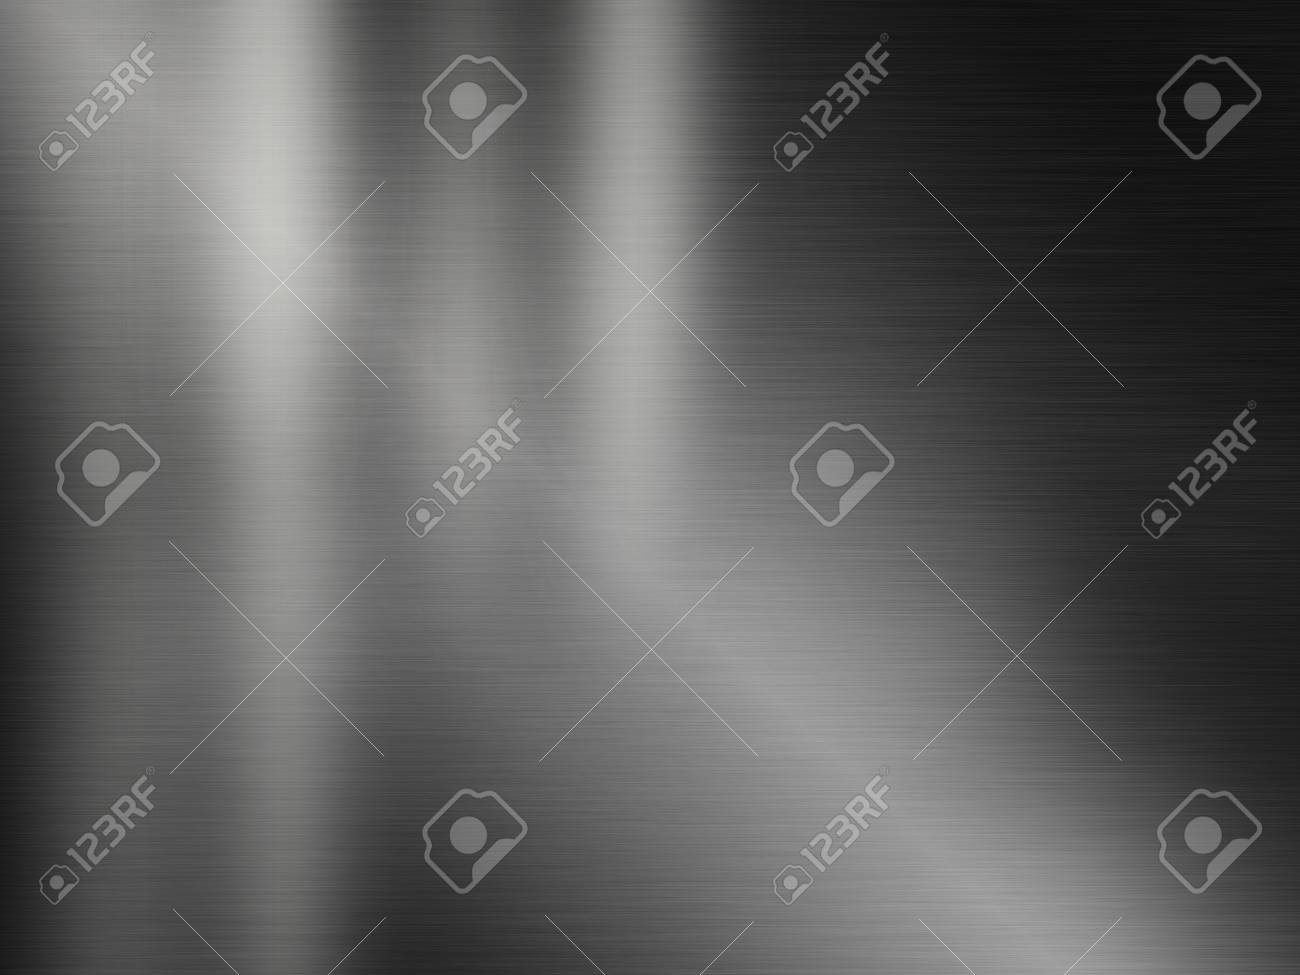 Stainless steel texture or metal texture background Banque d'images - 75076759